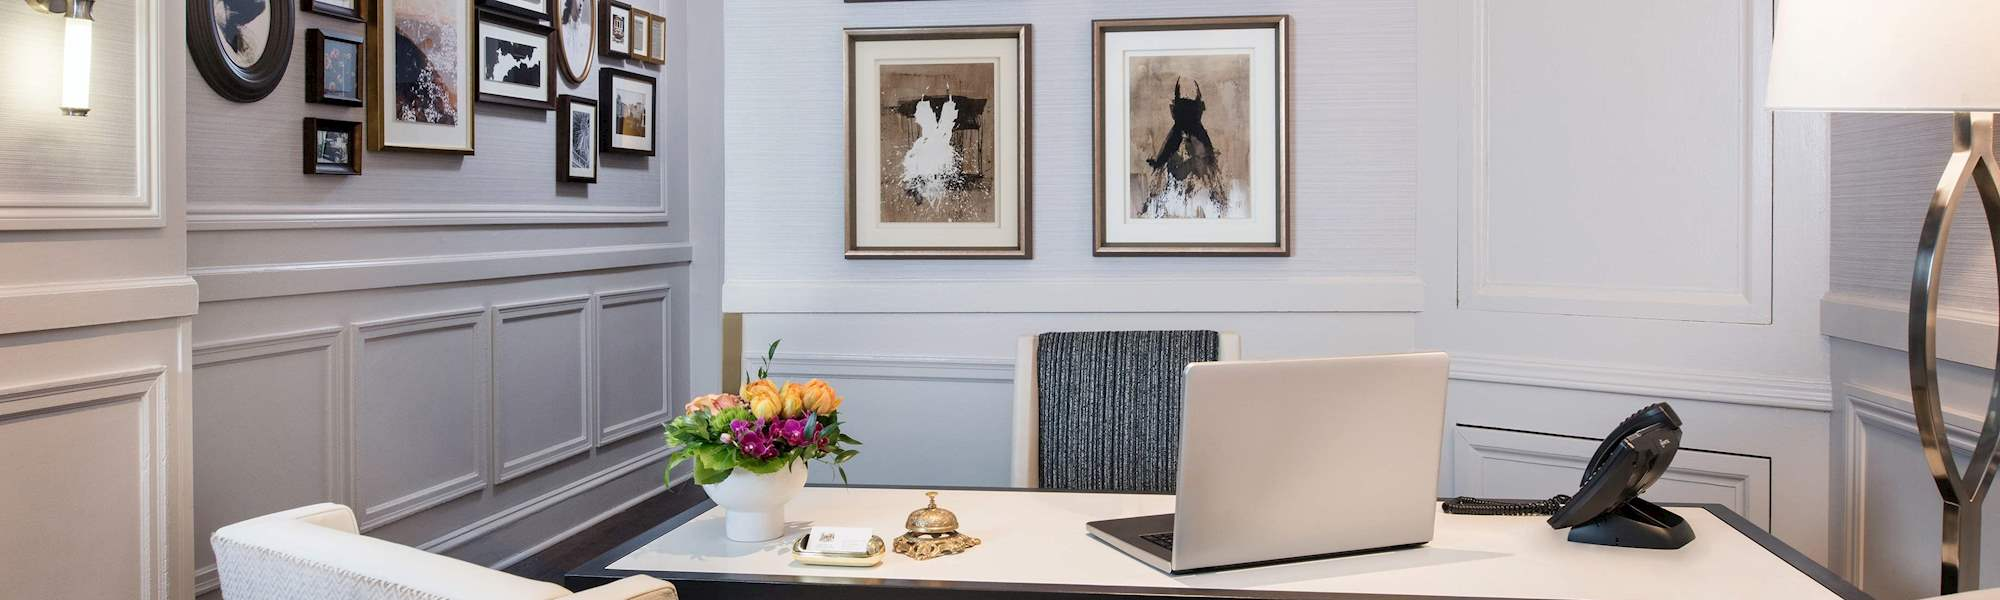 The Inn at Union Square San Francisco - A Greystone Hotel, San Francisco Book Direct Package